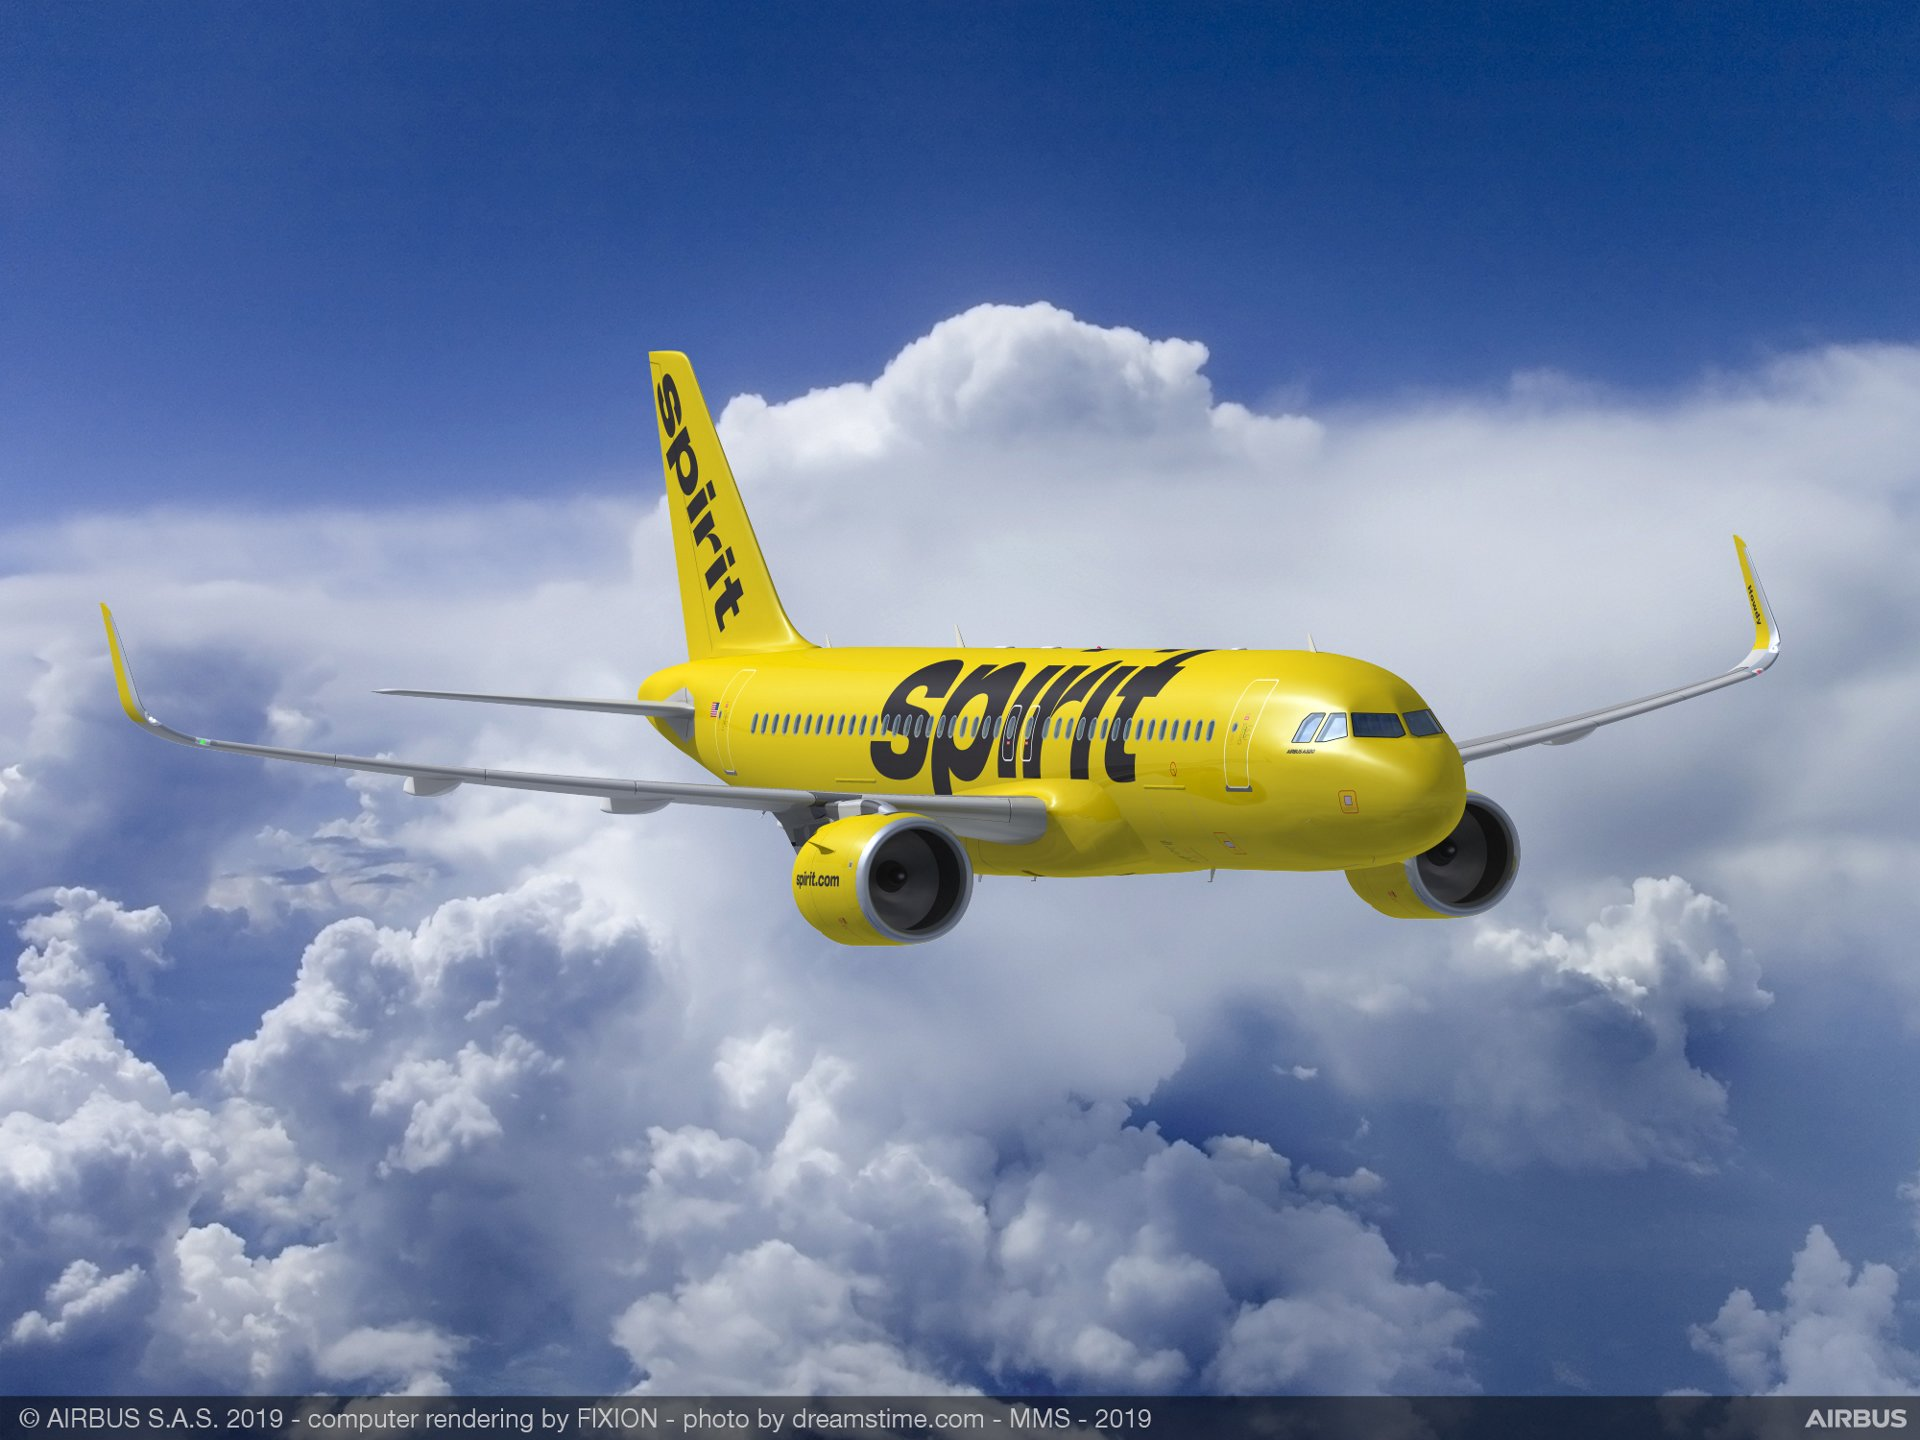 U.S.-based Spirit Airlines will place firm orders for a mix of A319neo, A320neo and A321neo jetliners to meet its future fleet requirements